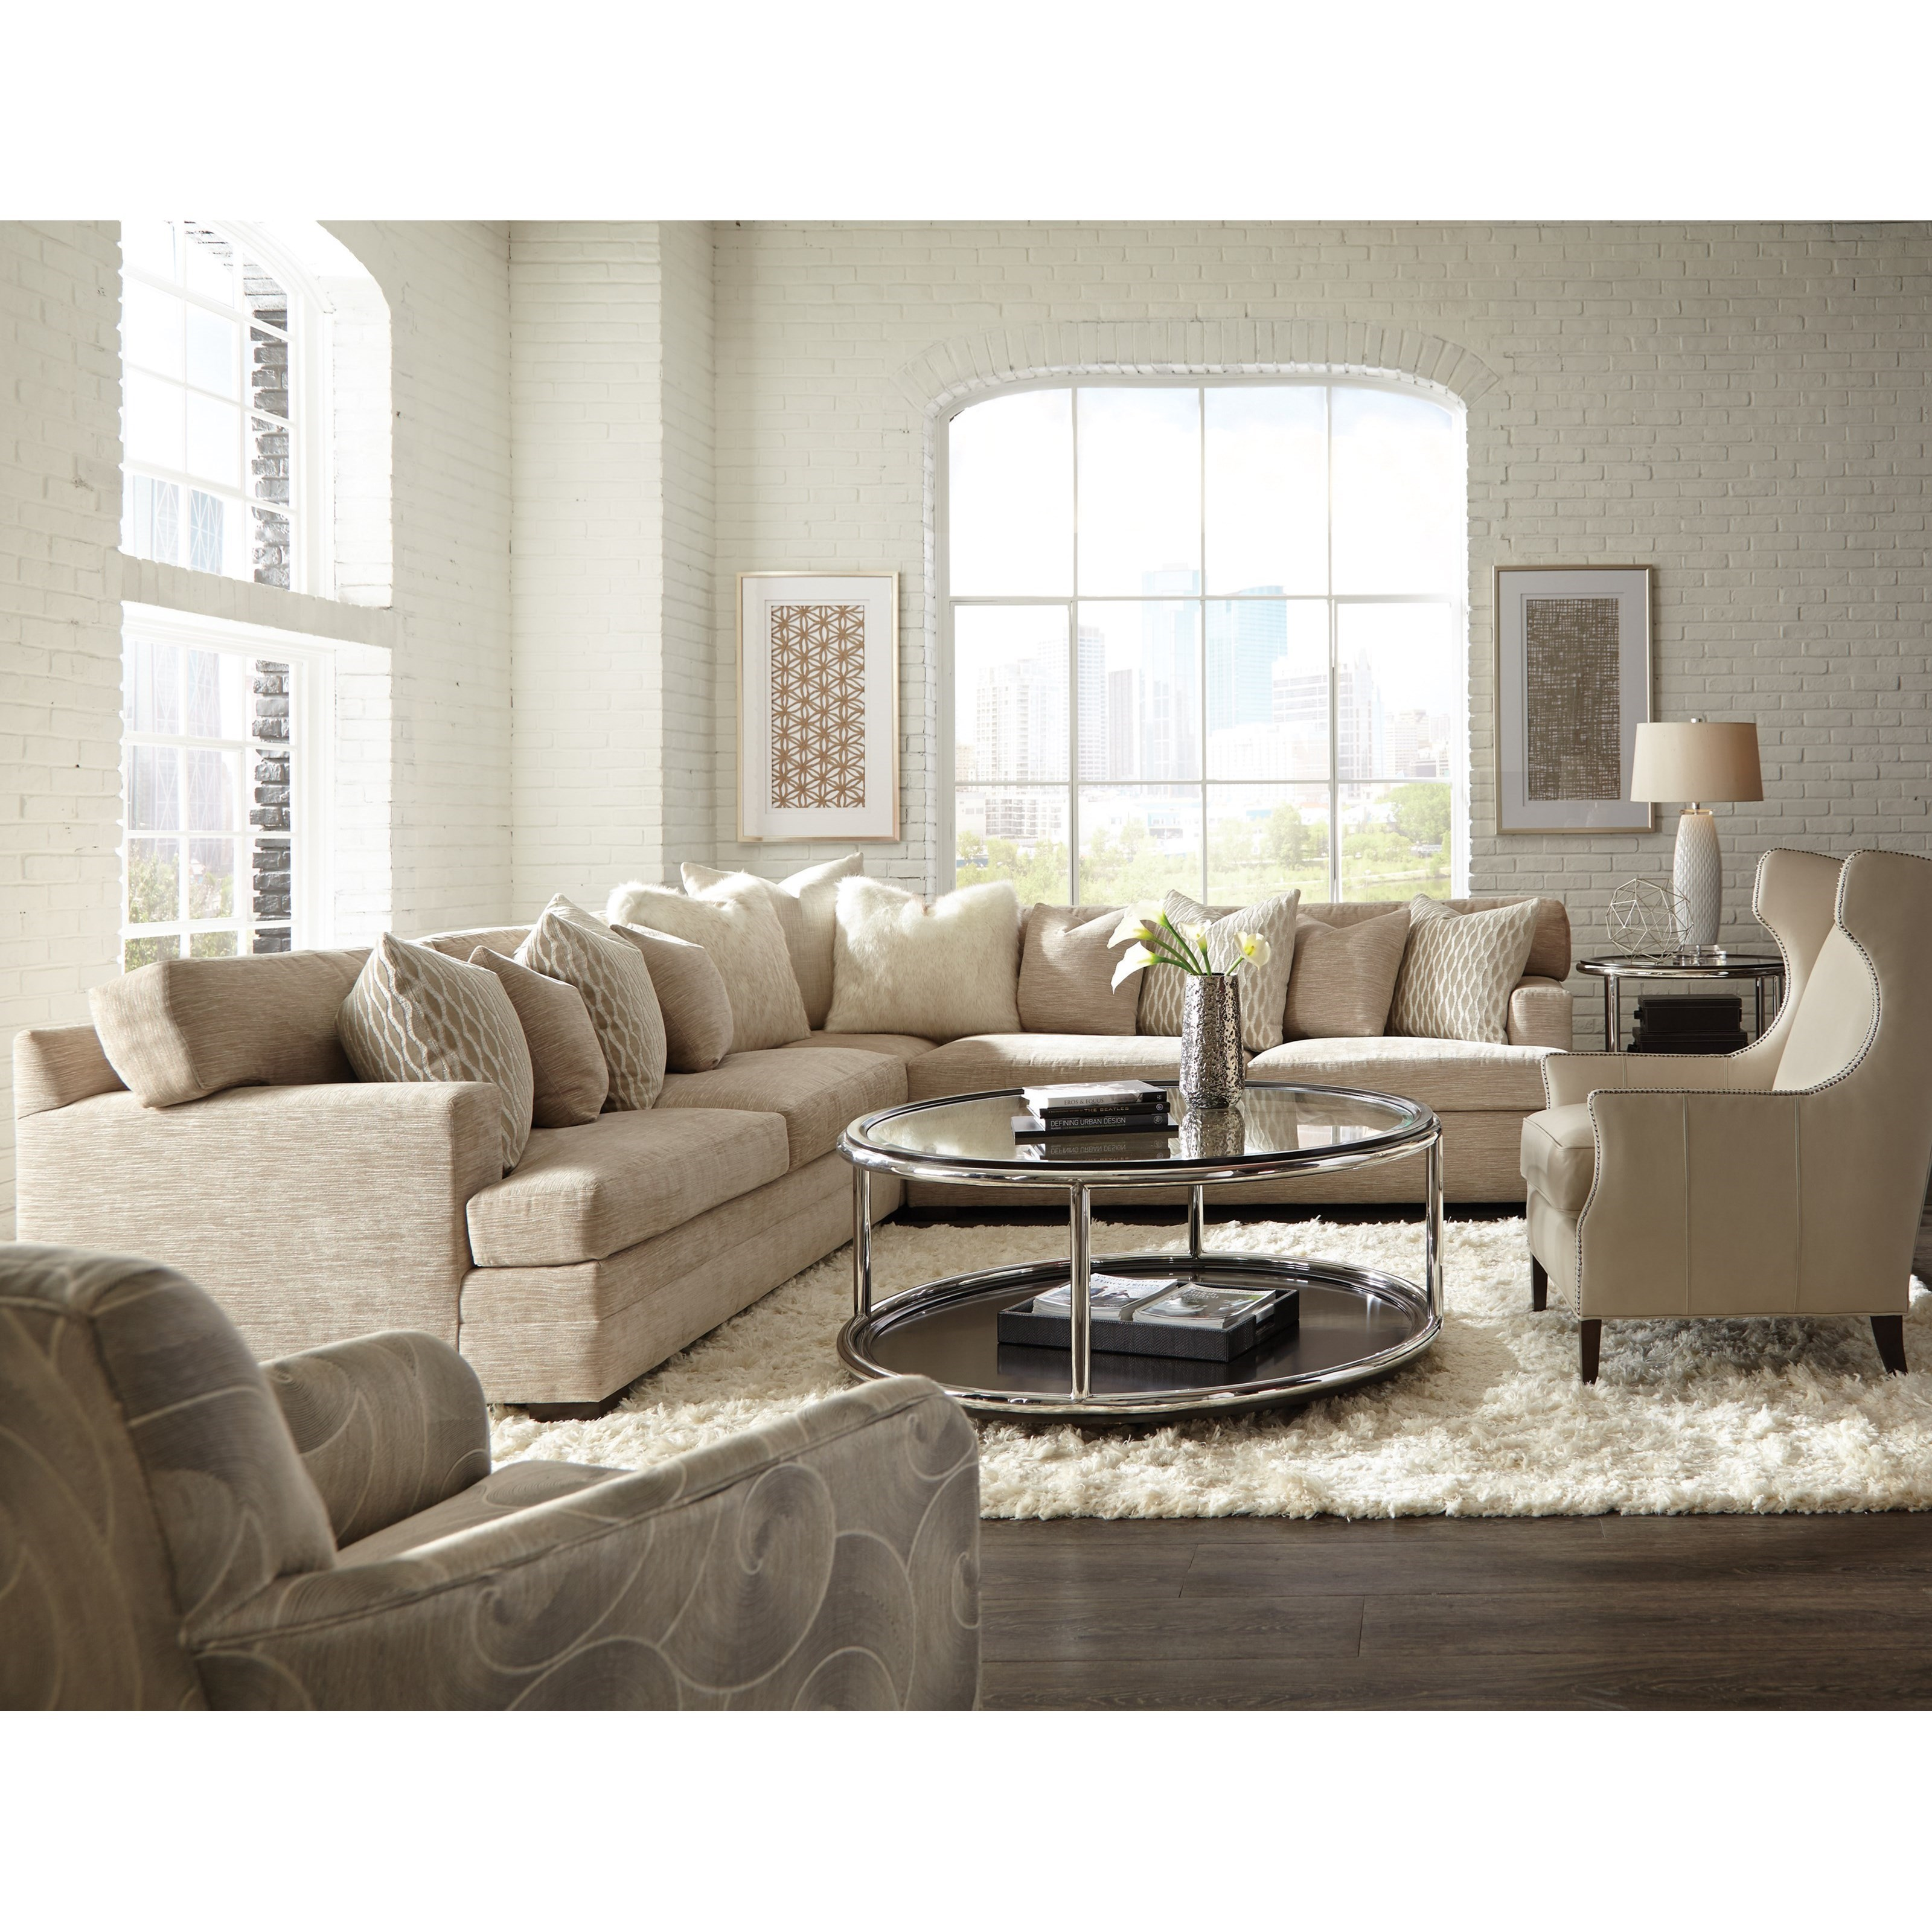 Hunington House Huntington House 7100 Contemporary L Shape Sectional With